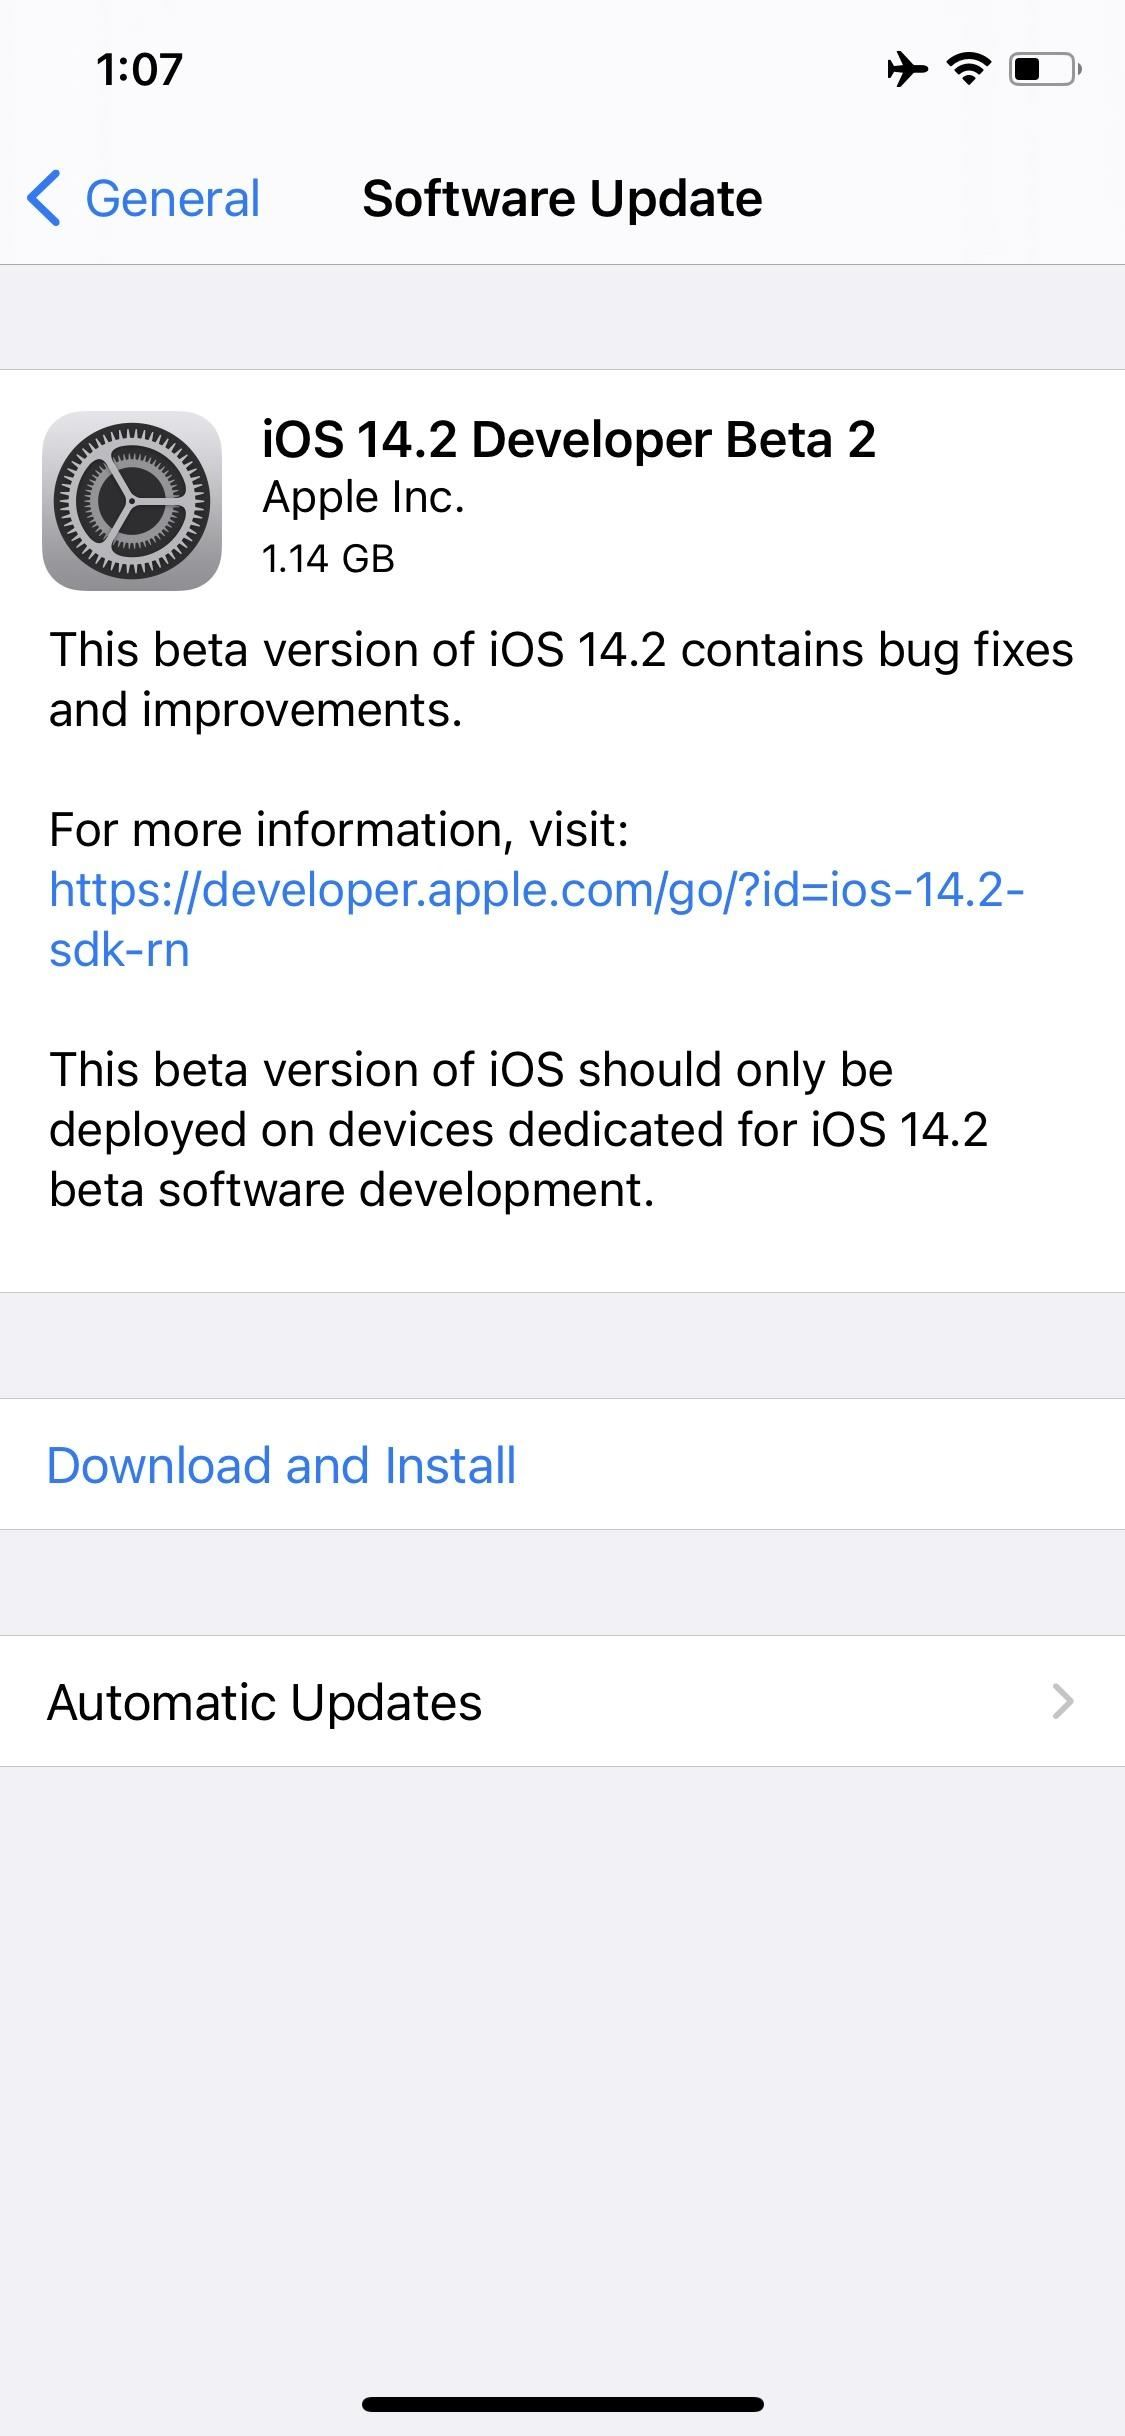 Apple Releases iOS 14.2 Developer Beta 2 for iPhone, Introduces New Emoji